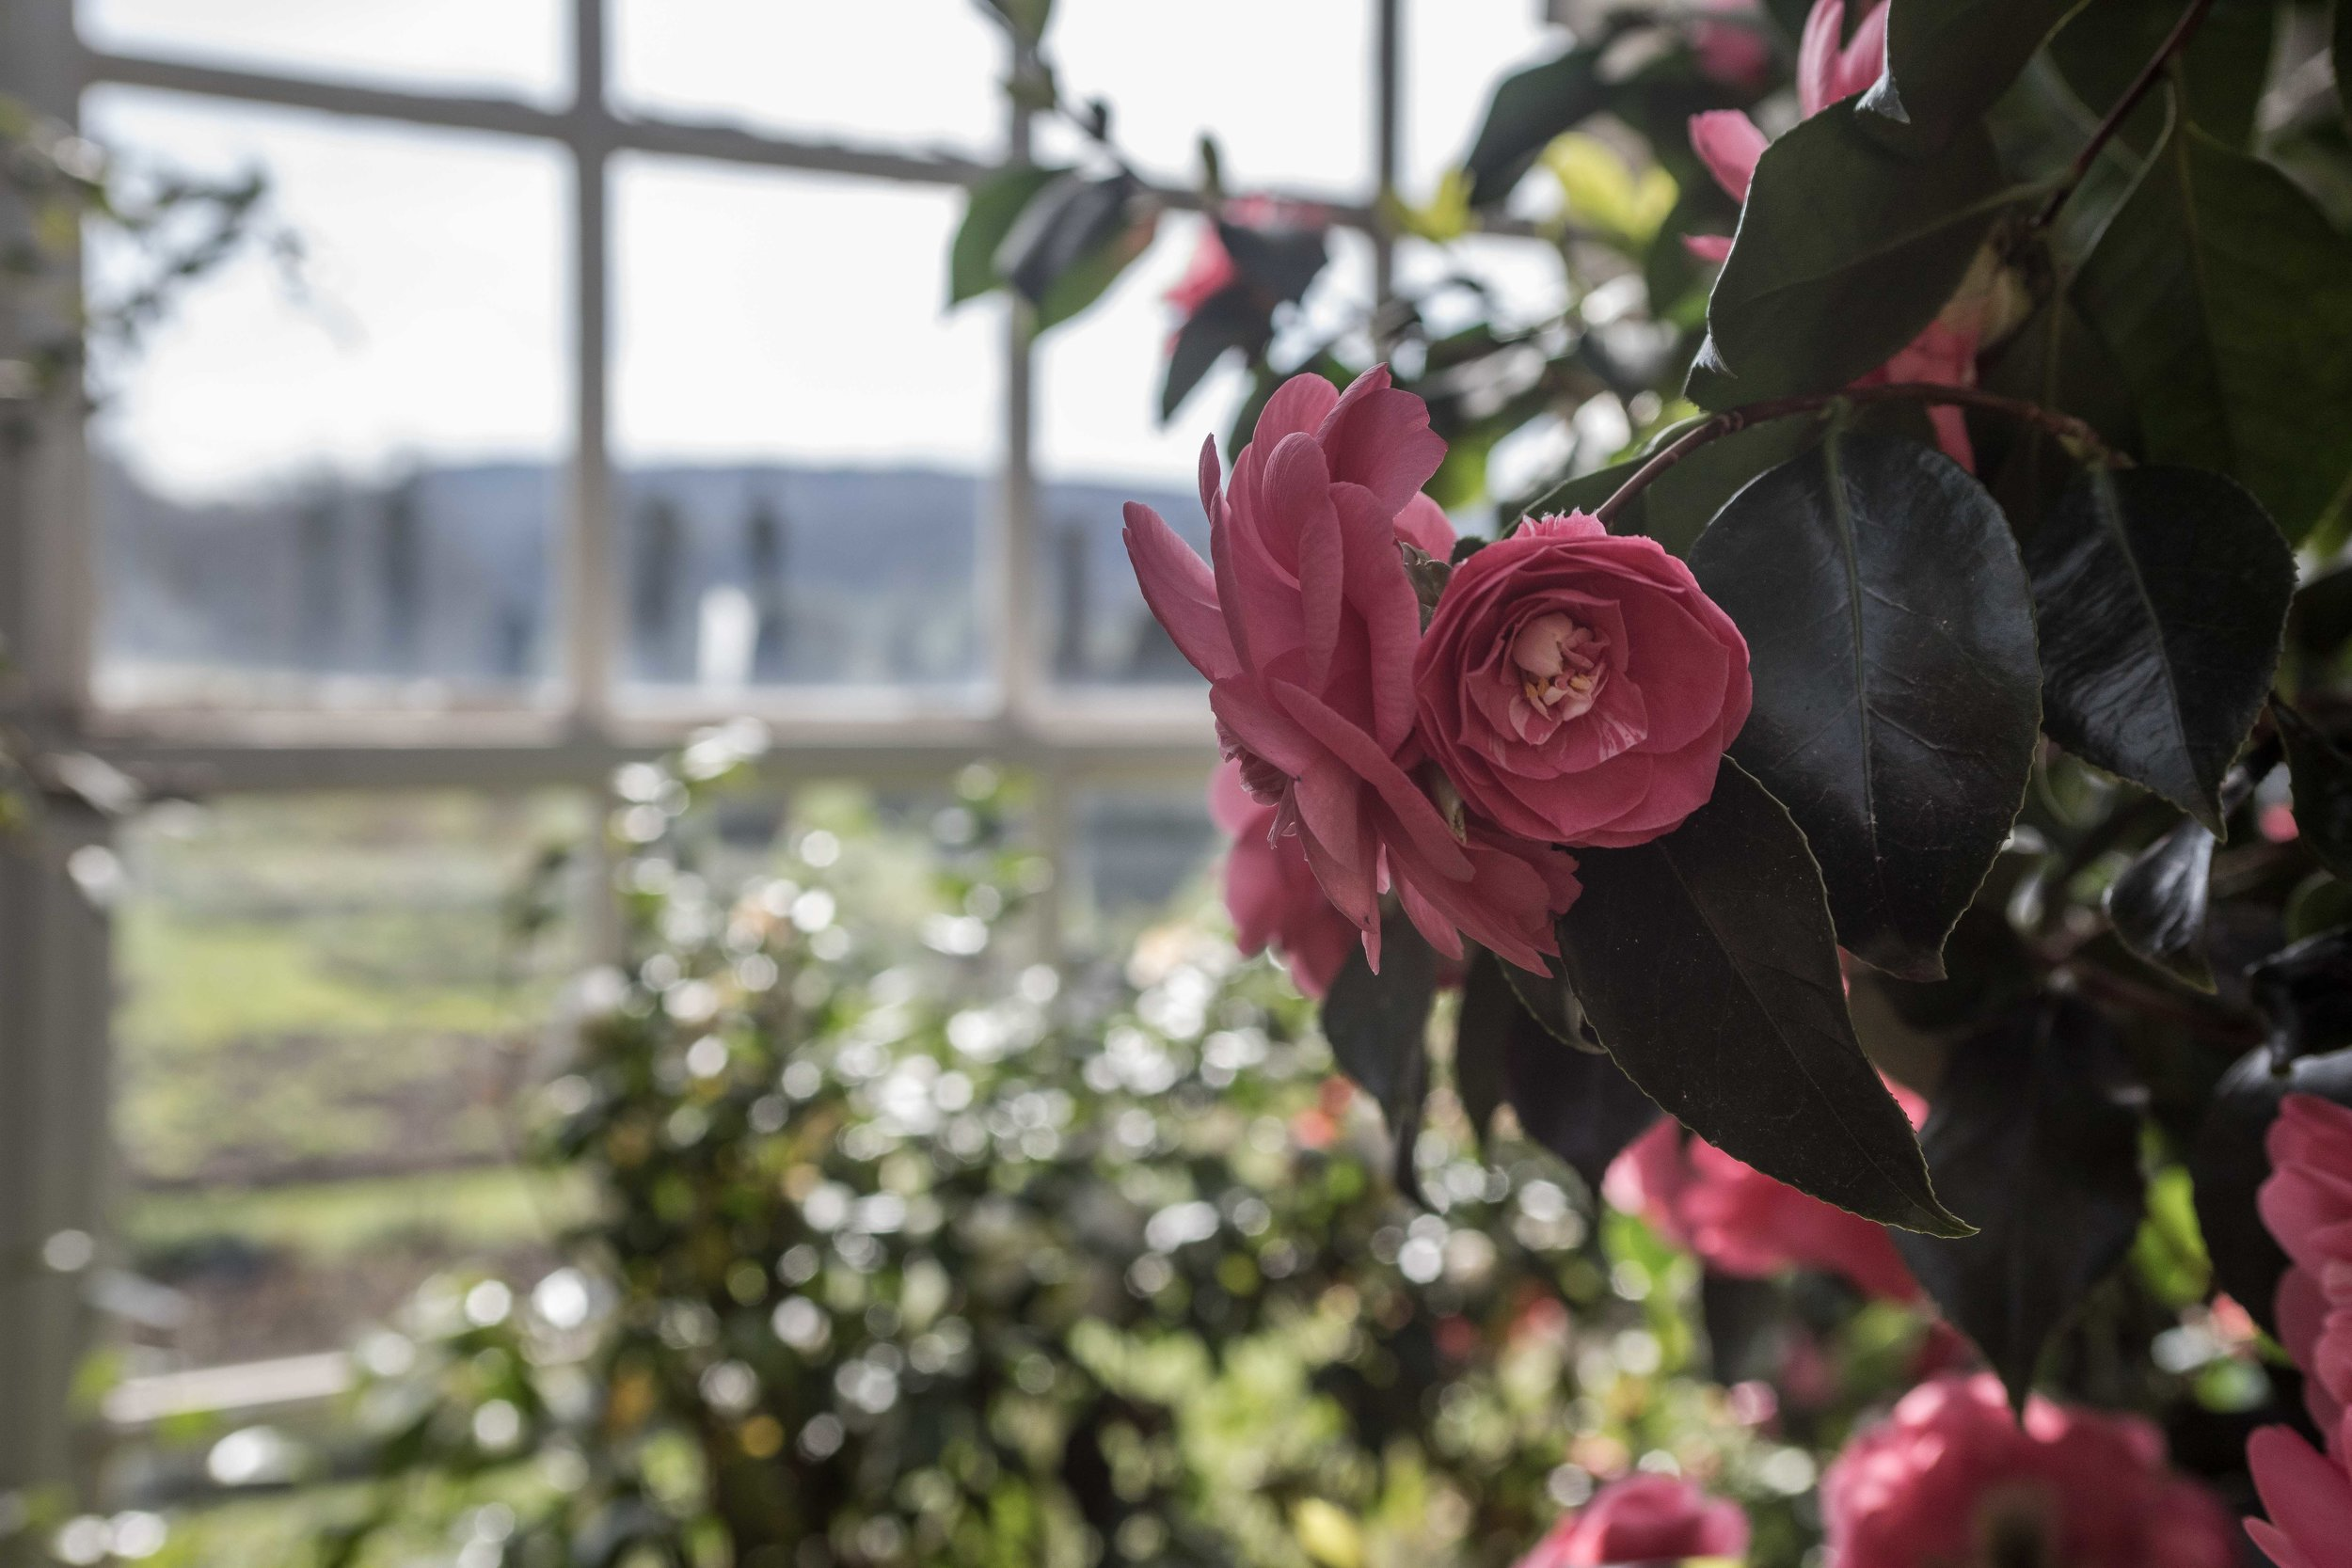 1st Dukes Greenhouse built in the 17th century now housing a collection of camellias.